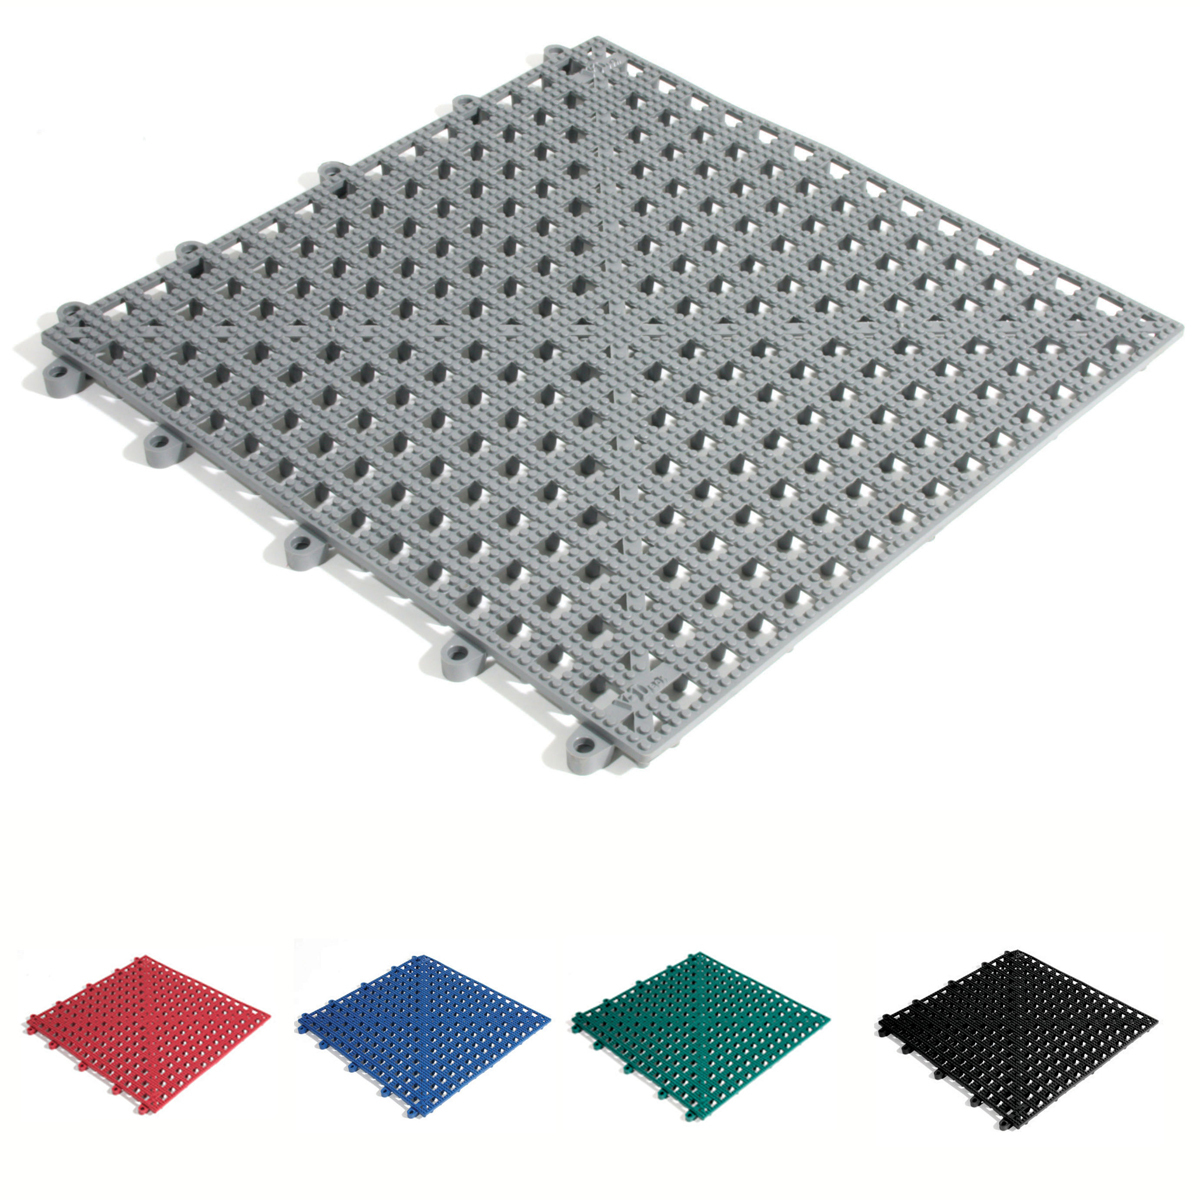 Flexi-Deck Wet Area Drainage Mats Pool Outside Non Slip